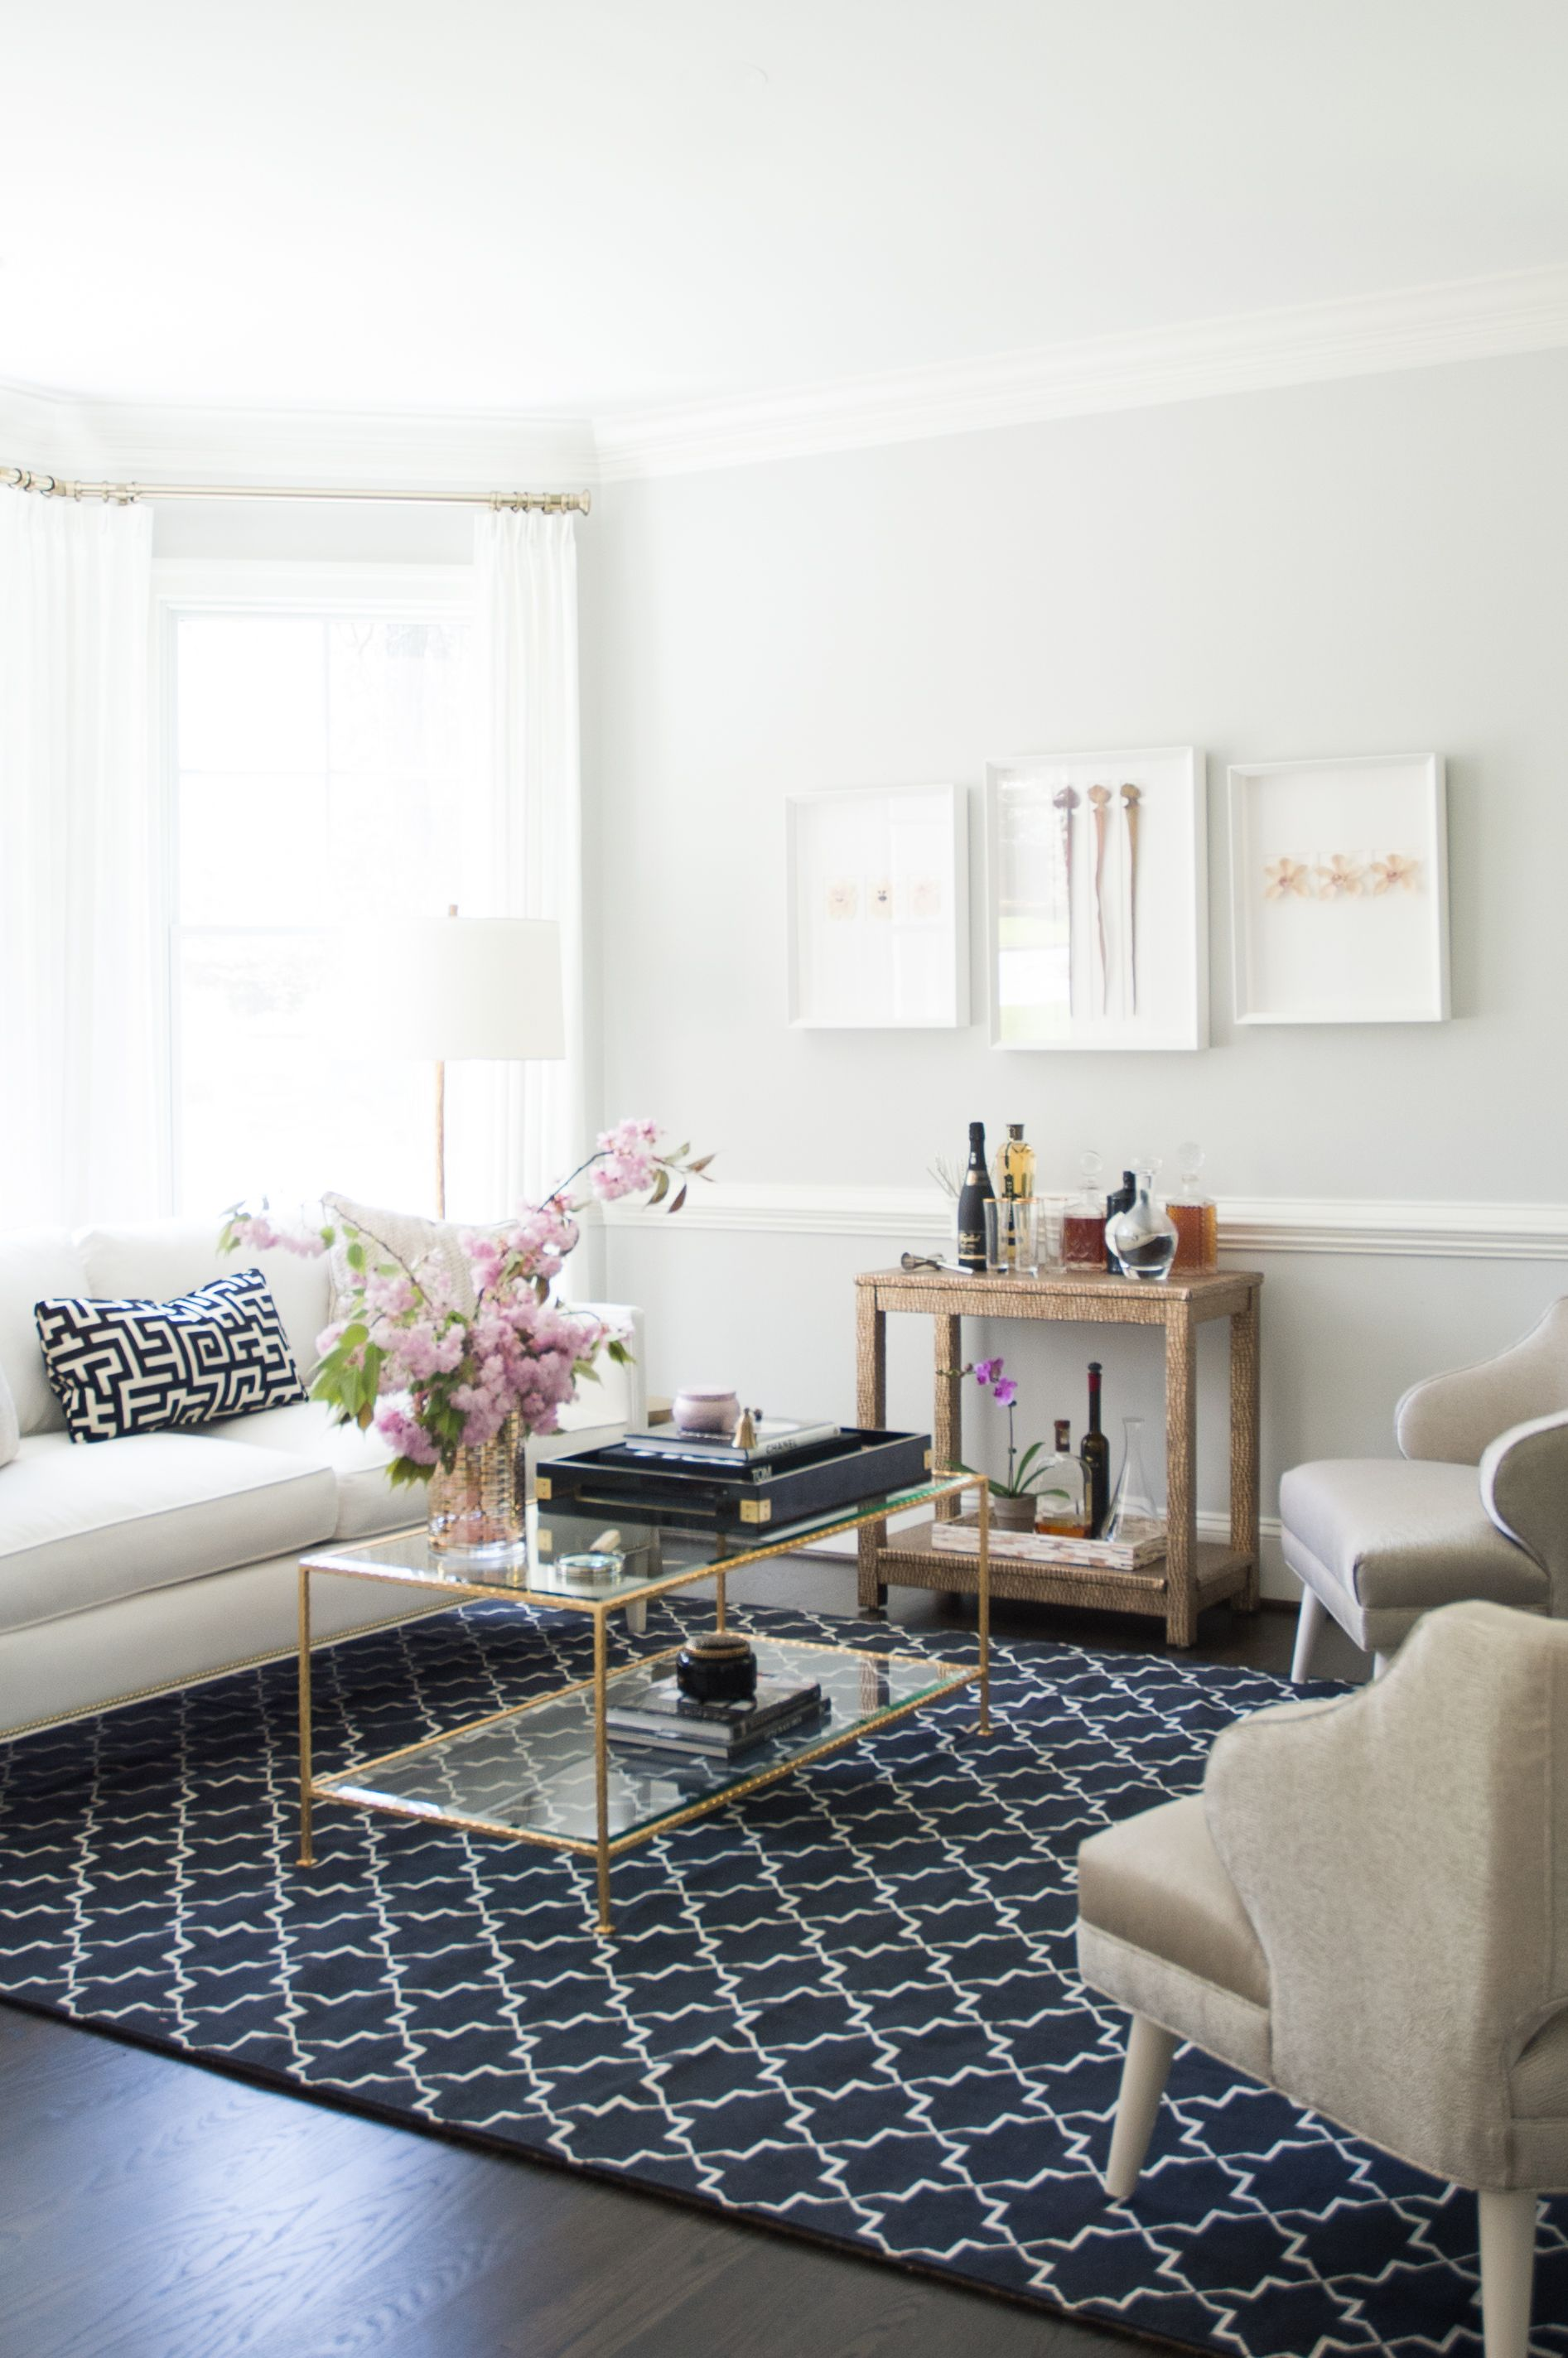 10 Home Decor Trends That Will Blow Up In 2016 Home Decor Trends Home Trends Trending Decor